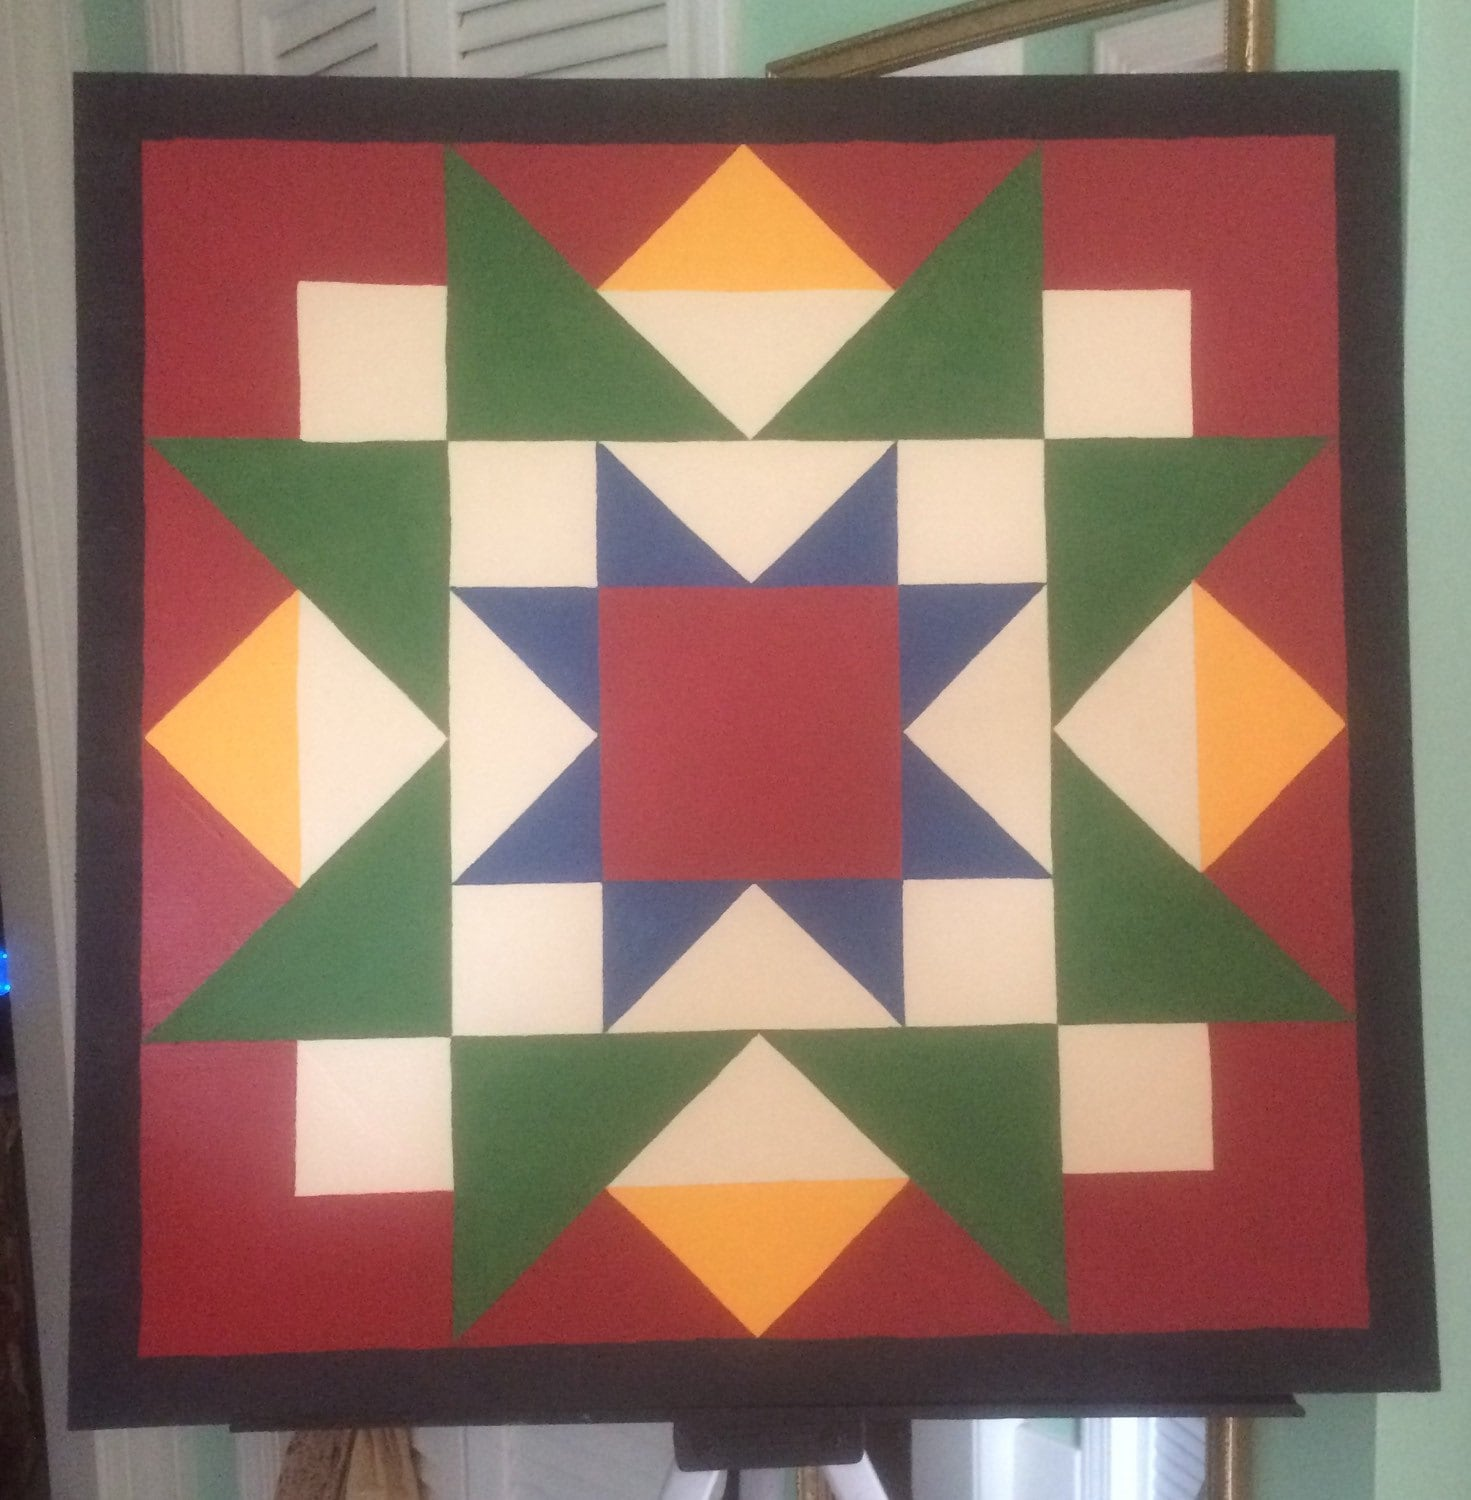 It's just an image of Old Fashioned Printable Barn Quilt Patterns